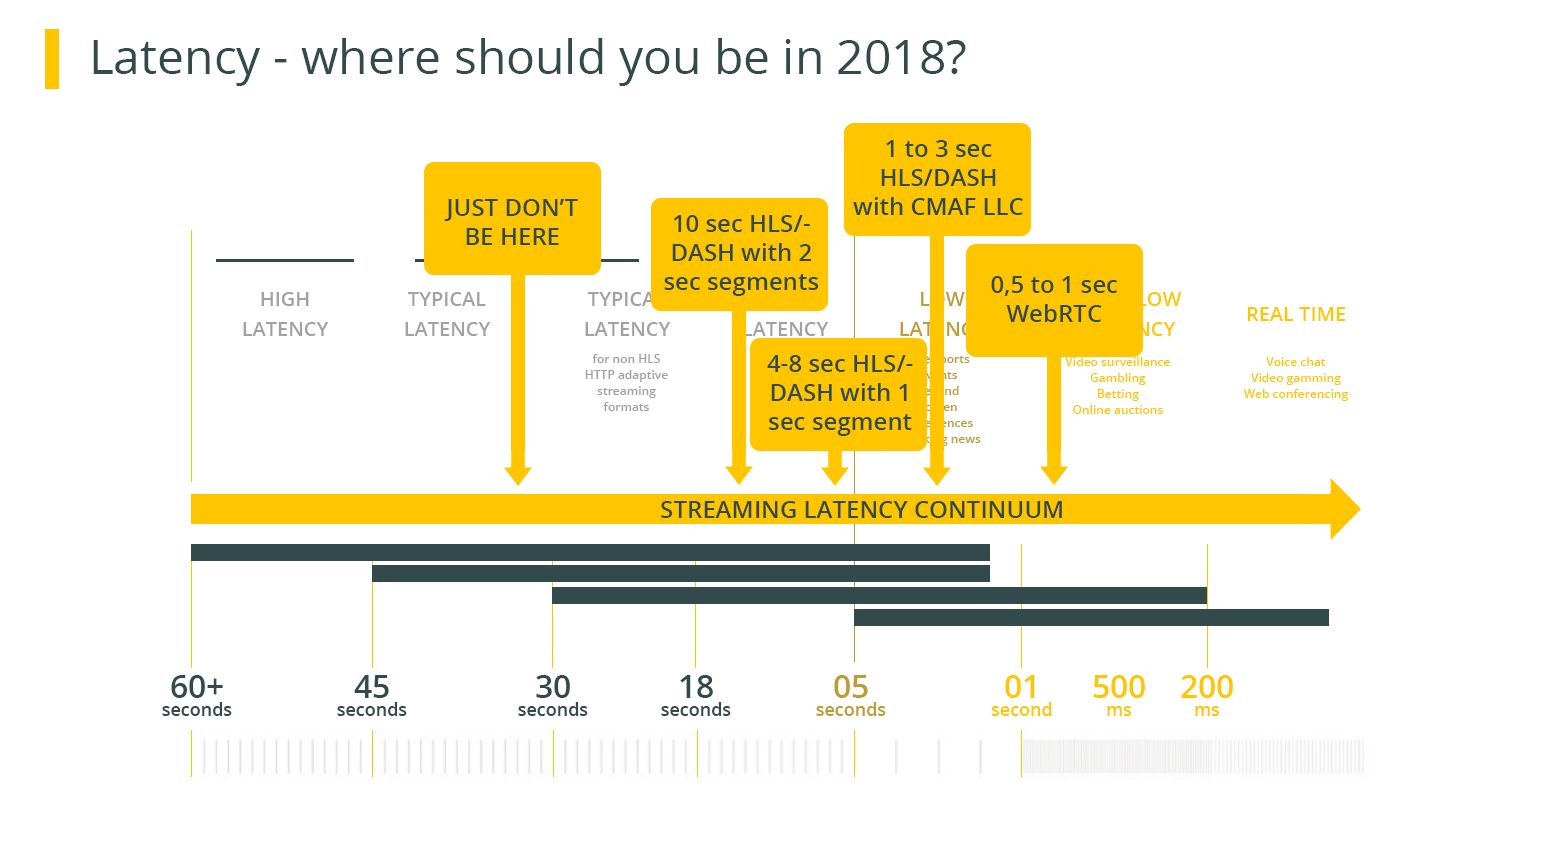 What is the latency in 2018 depending on the streaming protocol?